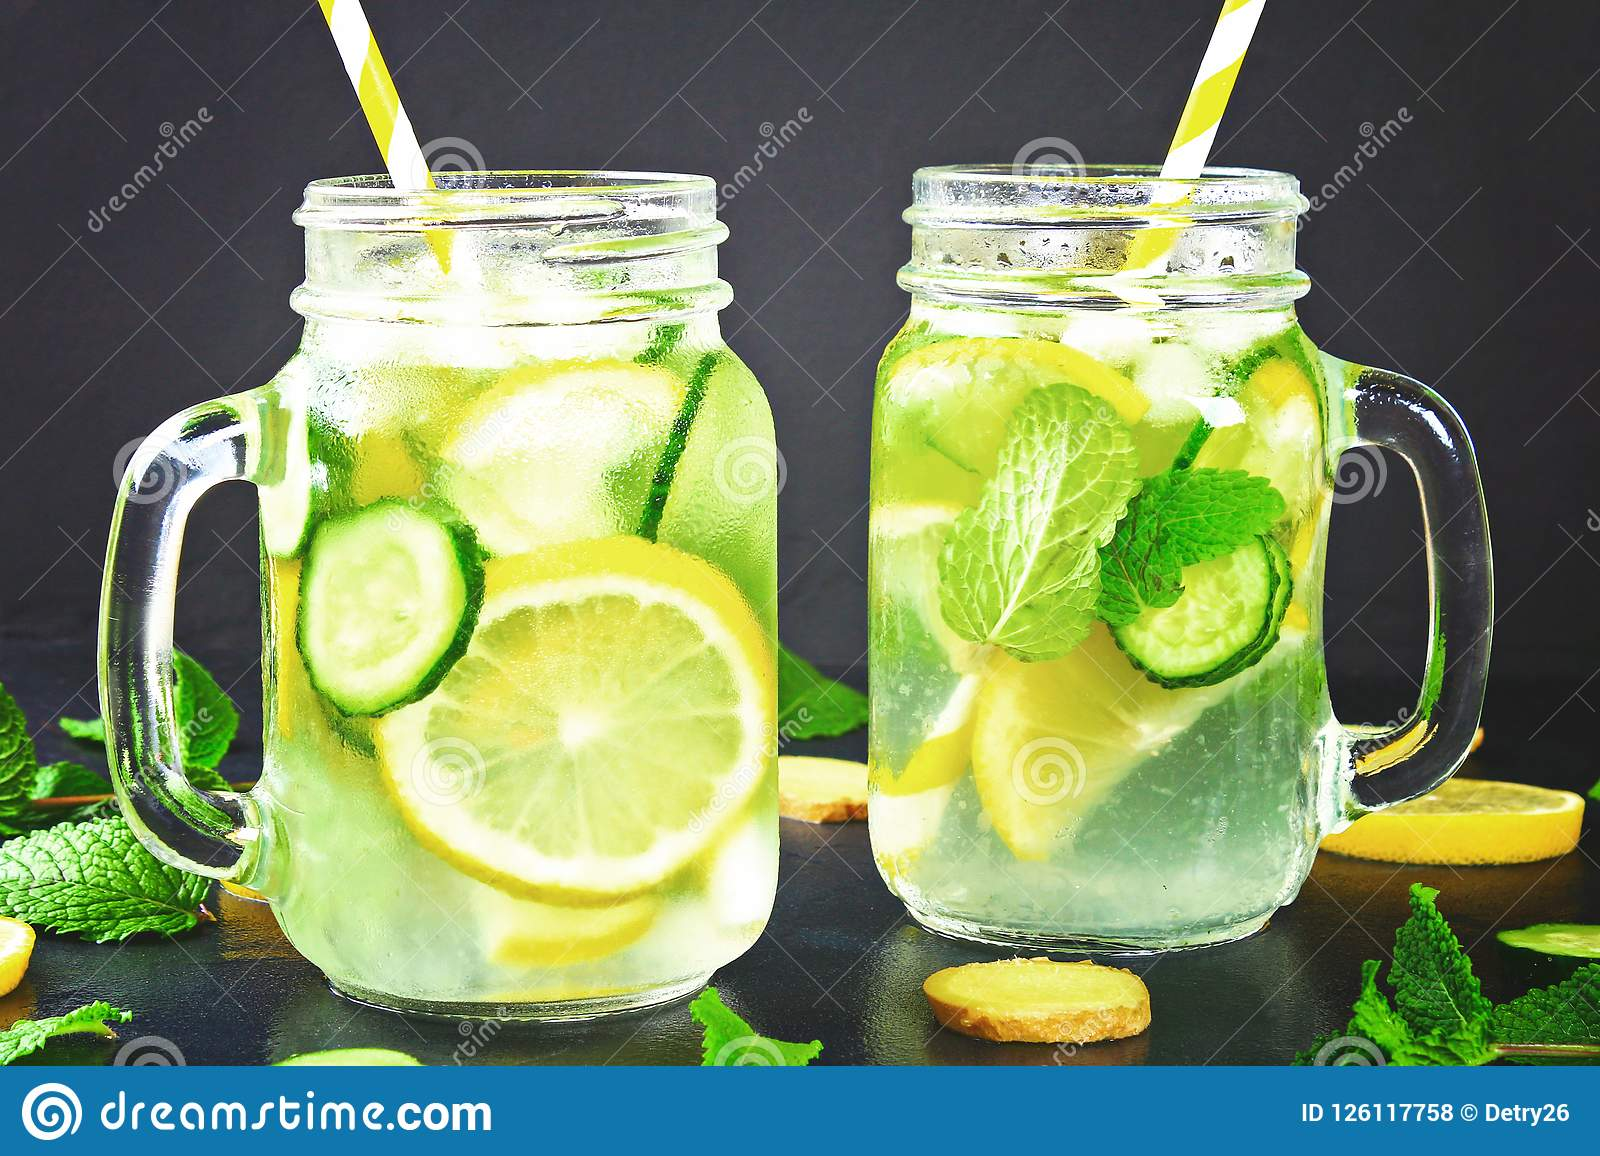 lemon and cucumber water for weight loss